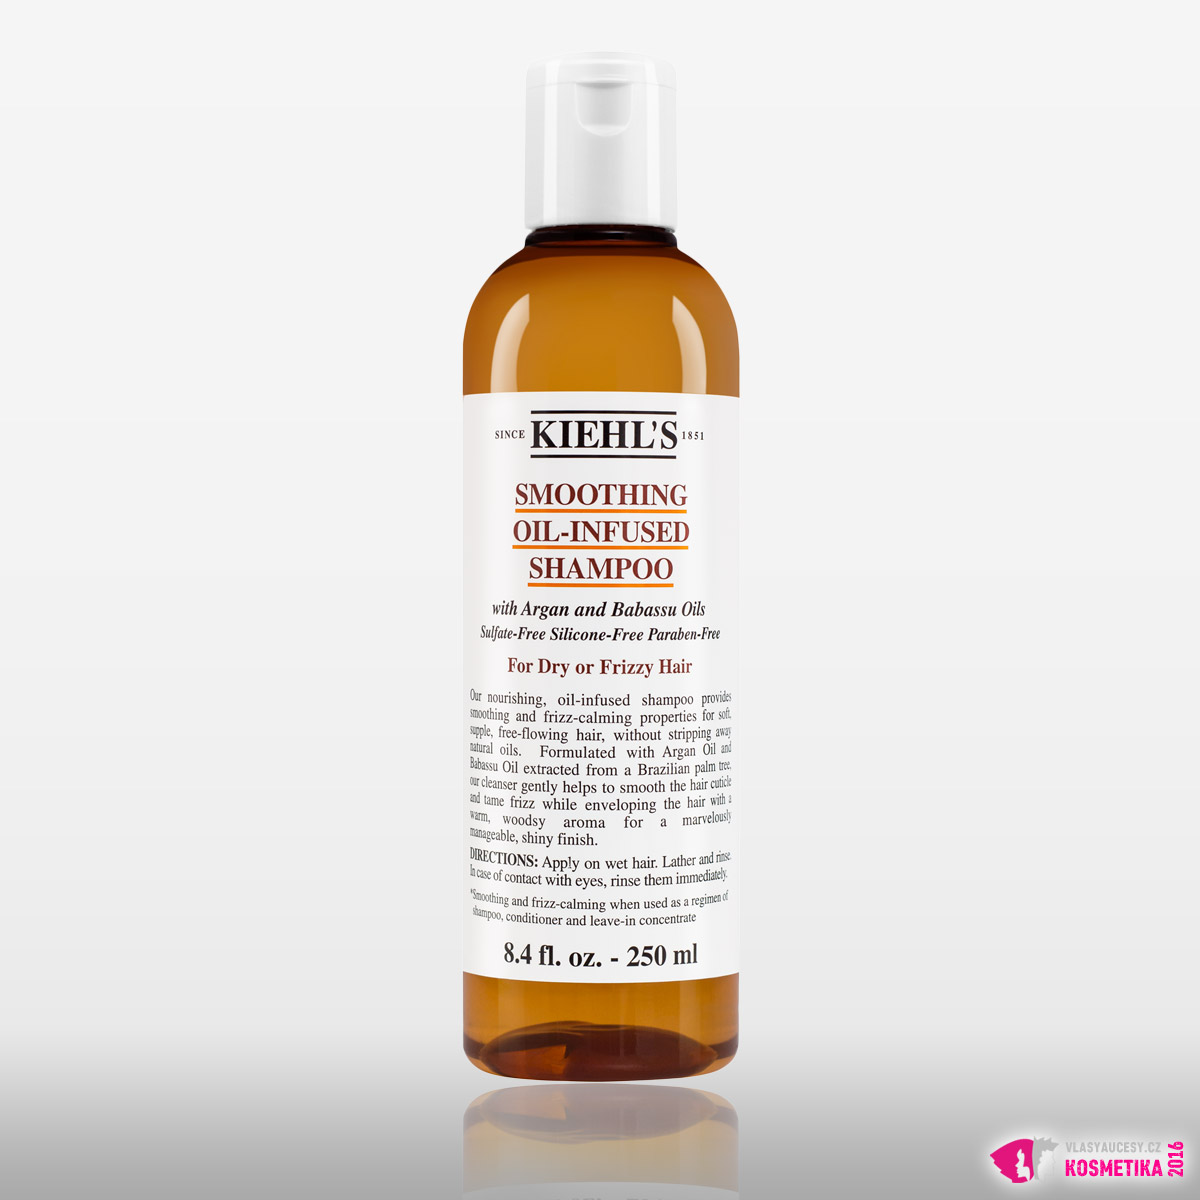 Šampon pro suché vlasy Kiehl's Smoothing Oil-Infused Shampoo.